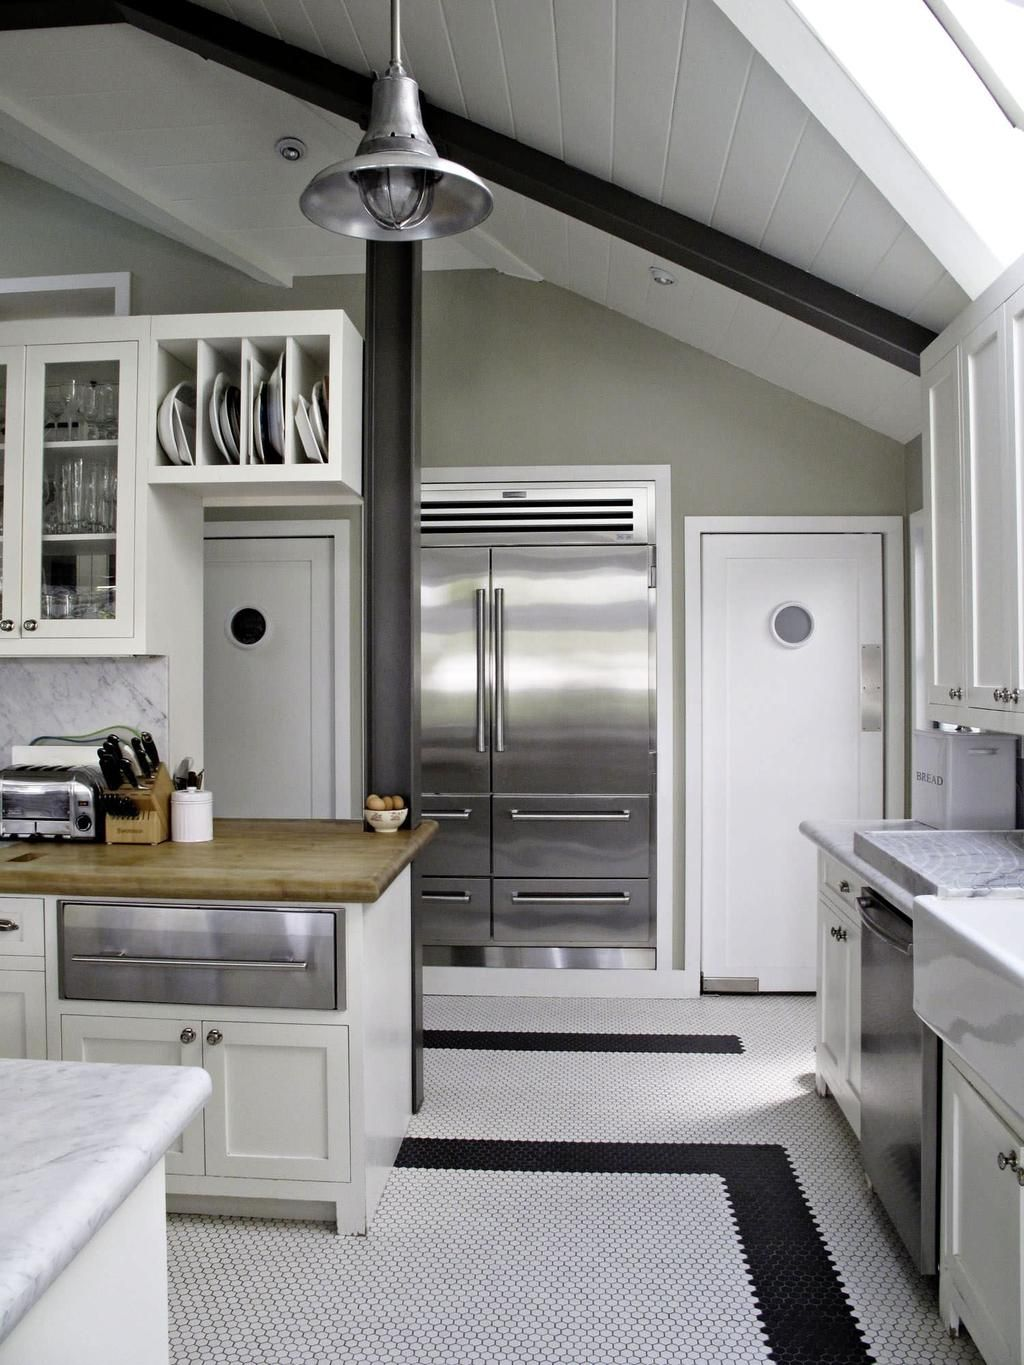 Penny Tile Floor In Kitchen With Black